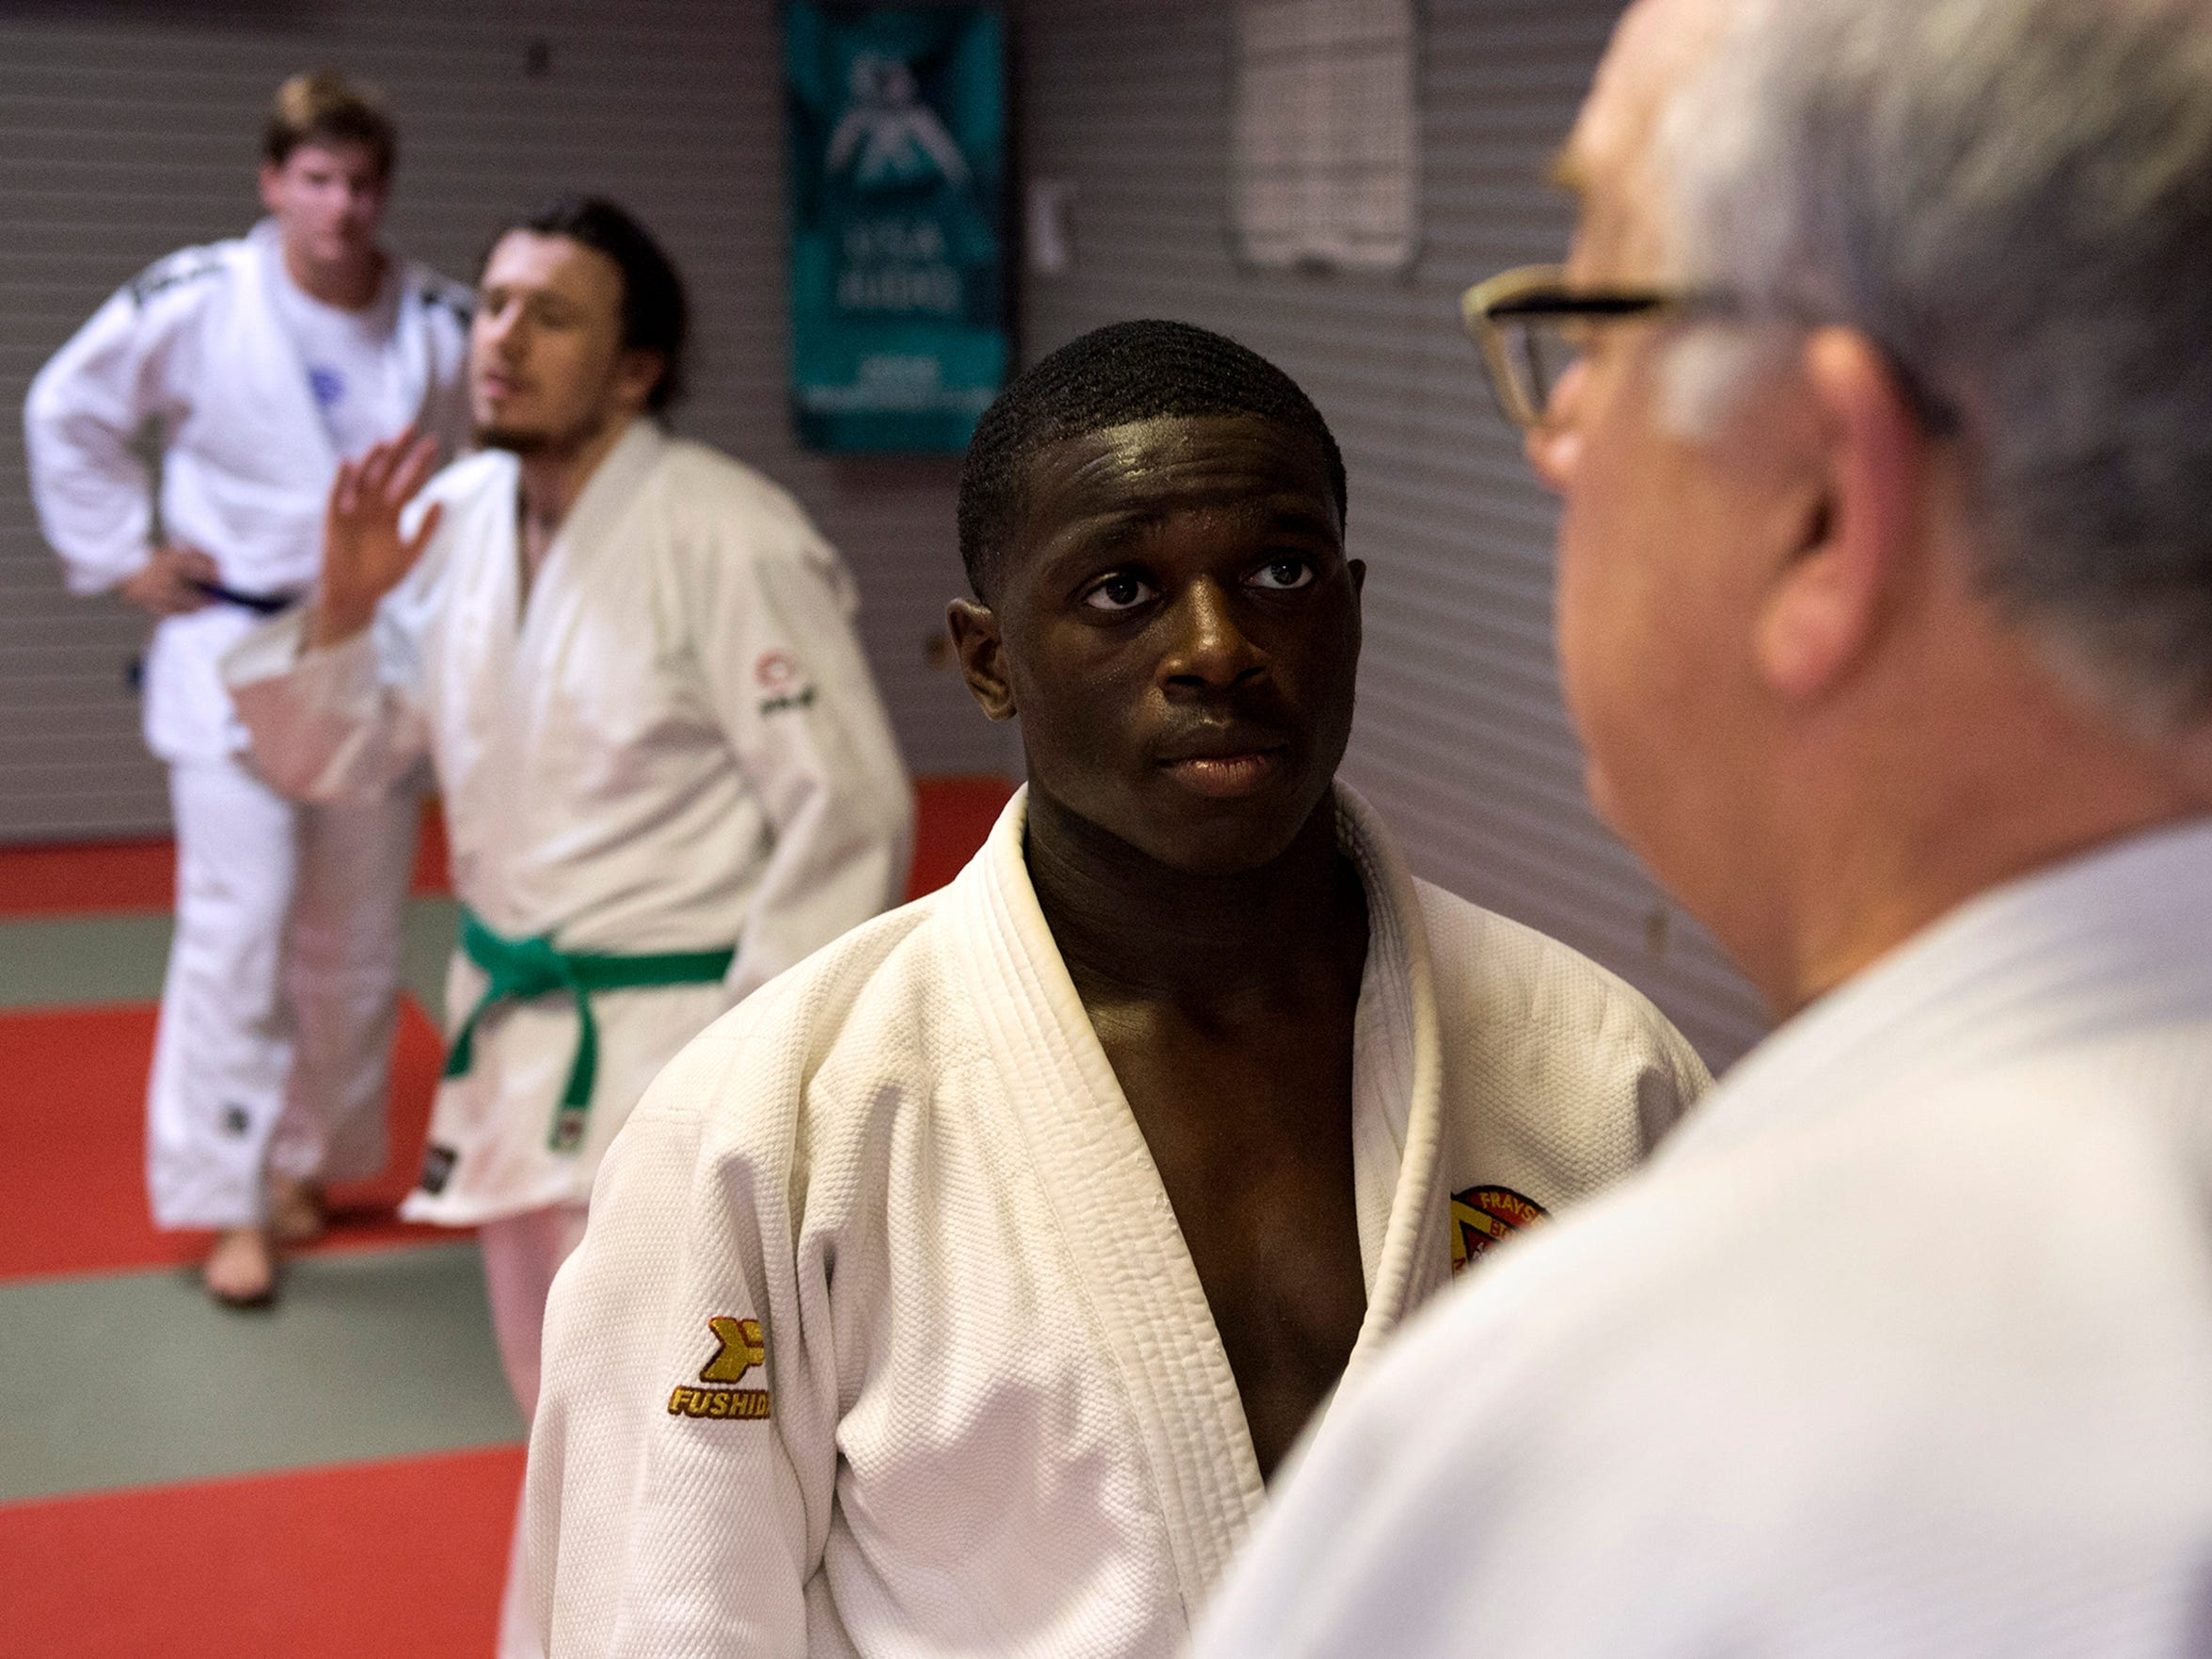 Judo coach Glen Campbell (right) teaches Darrius Isom (center) at Memphis Judo & Jiu-Jitsu in Bartlett. It's only 15 miles away from Isom's house, but a world away from the gangs, violence, drugs and vicious cycle of poverty in his neighborhood.